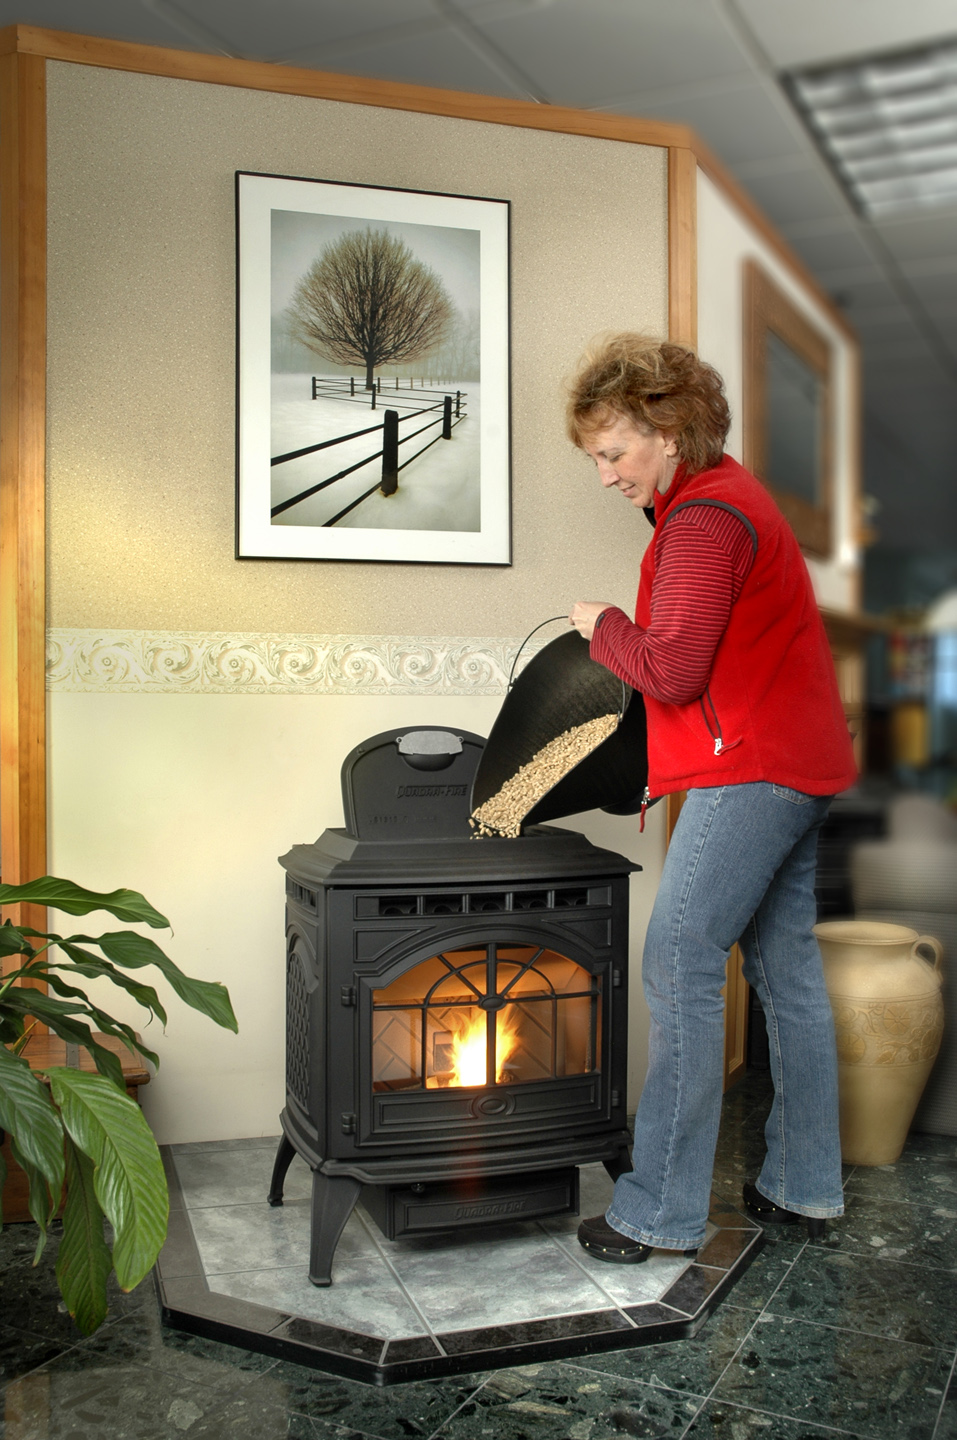 Free Standing Pellet Stoves Stove Inserts For Fireplaces Can Be Found Here Provide The Benefits Of A Wood While Requiring Less Work And